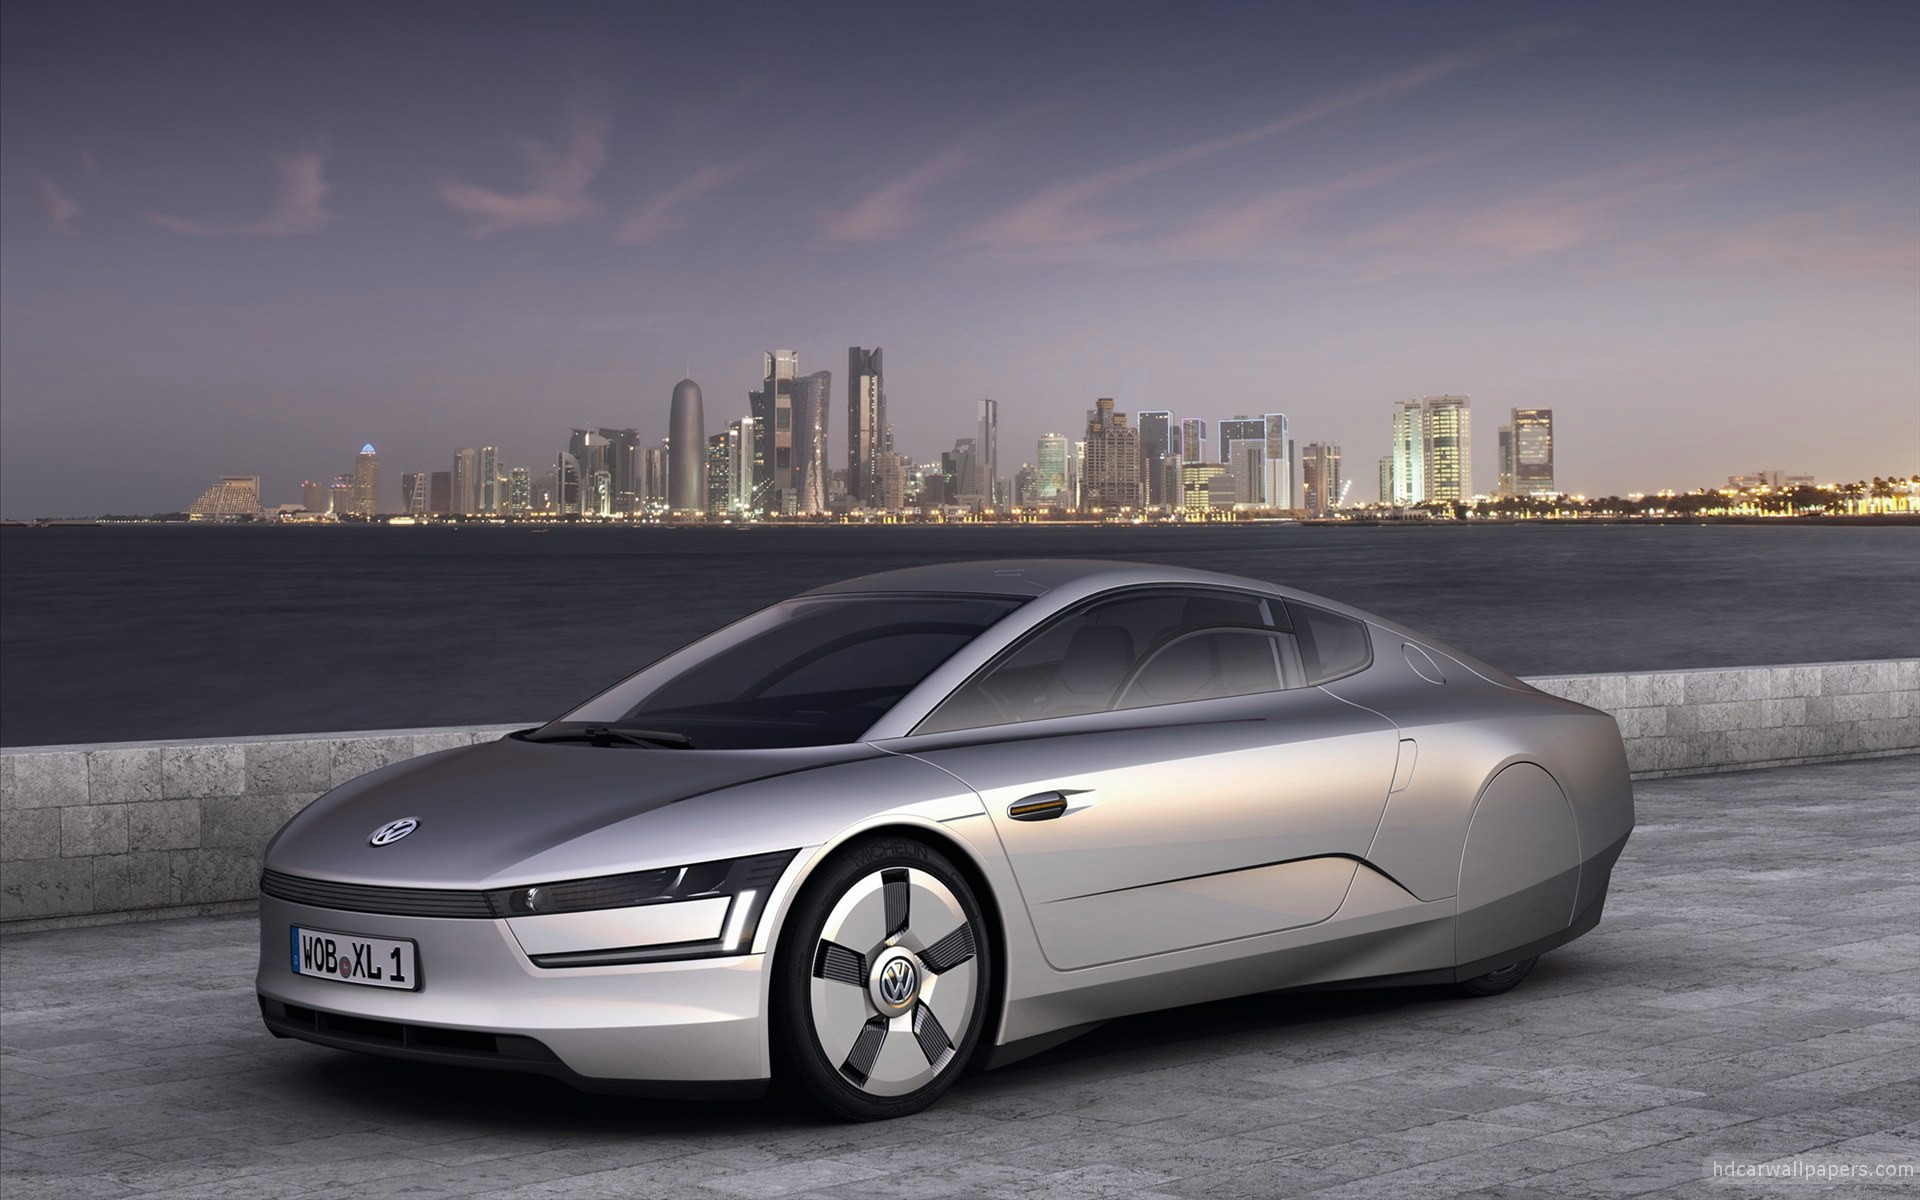 2011 Volkswagen XL1 Concept 4 Wallpaper | HD Car Wallpapers